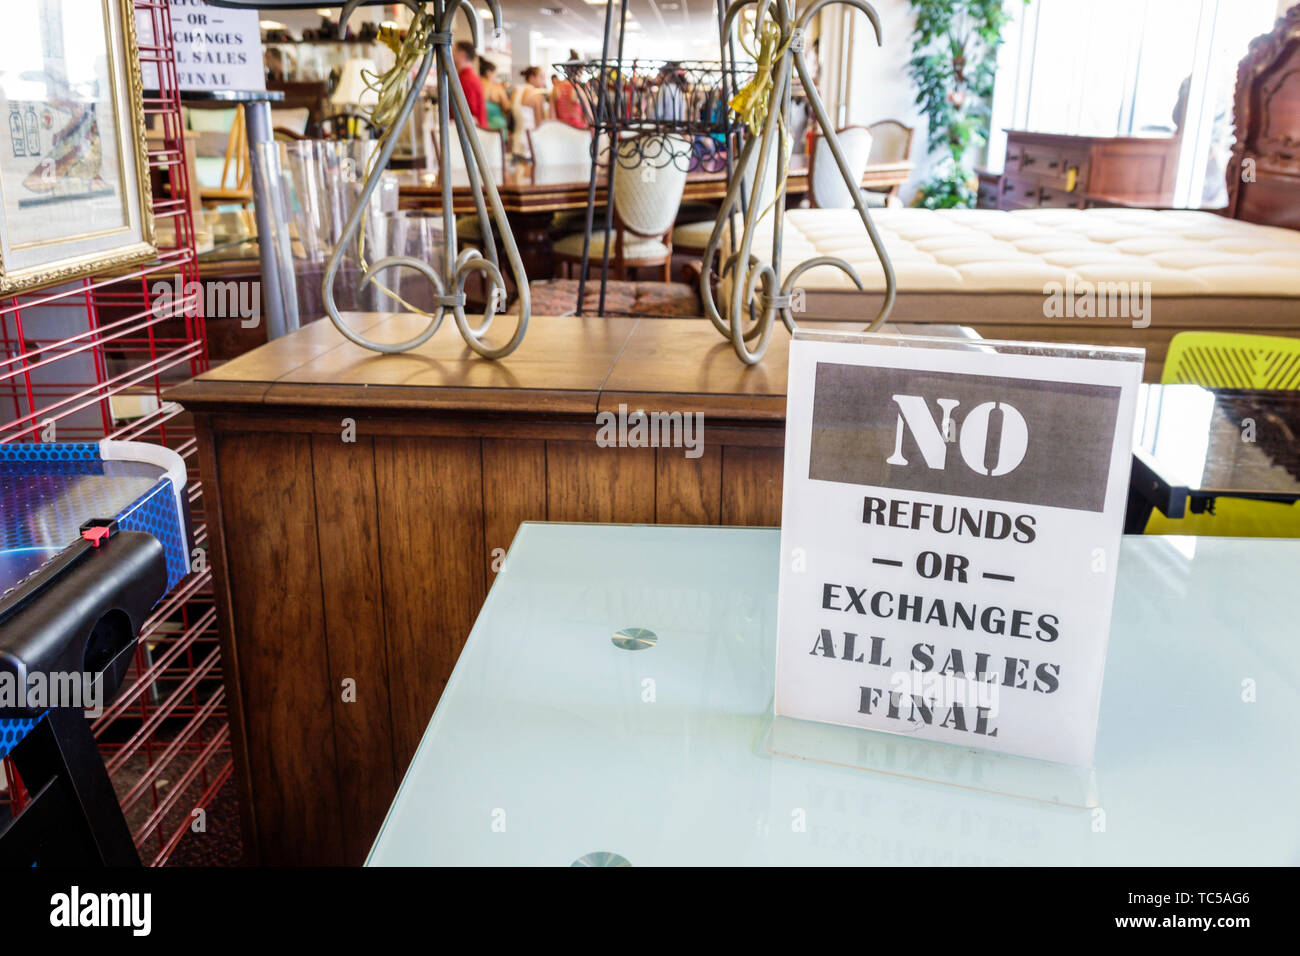 Miami Florida Salvation Army Family Store used clothing furniture household items for sale donated donations low income shopping sign no refunds excha - Stock Image